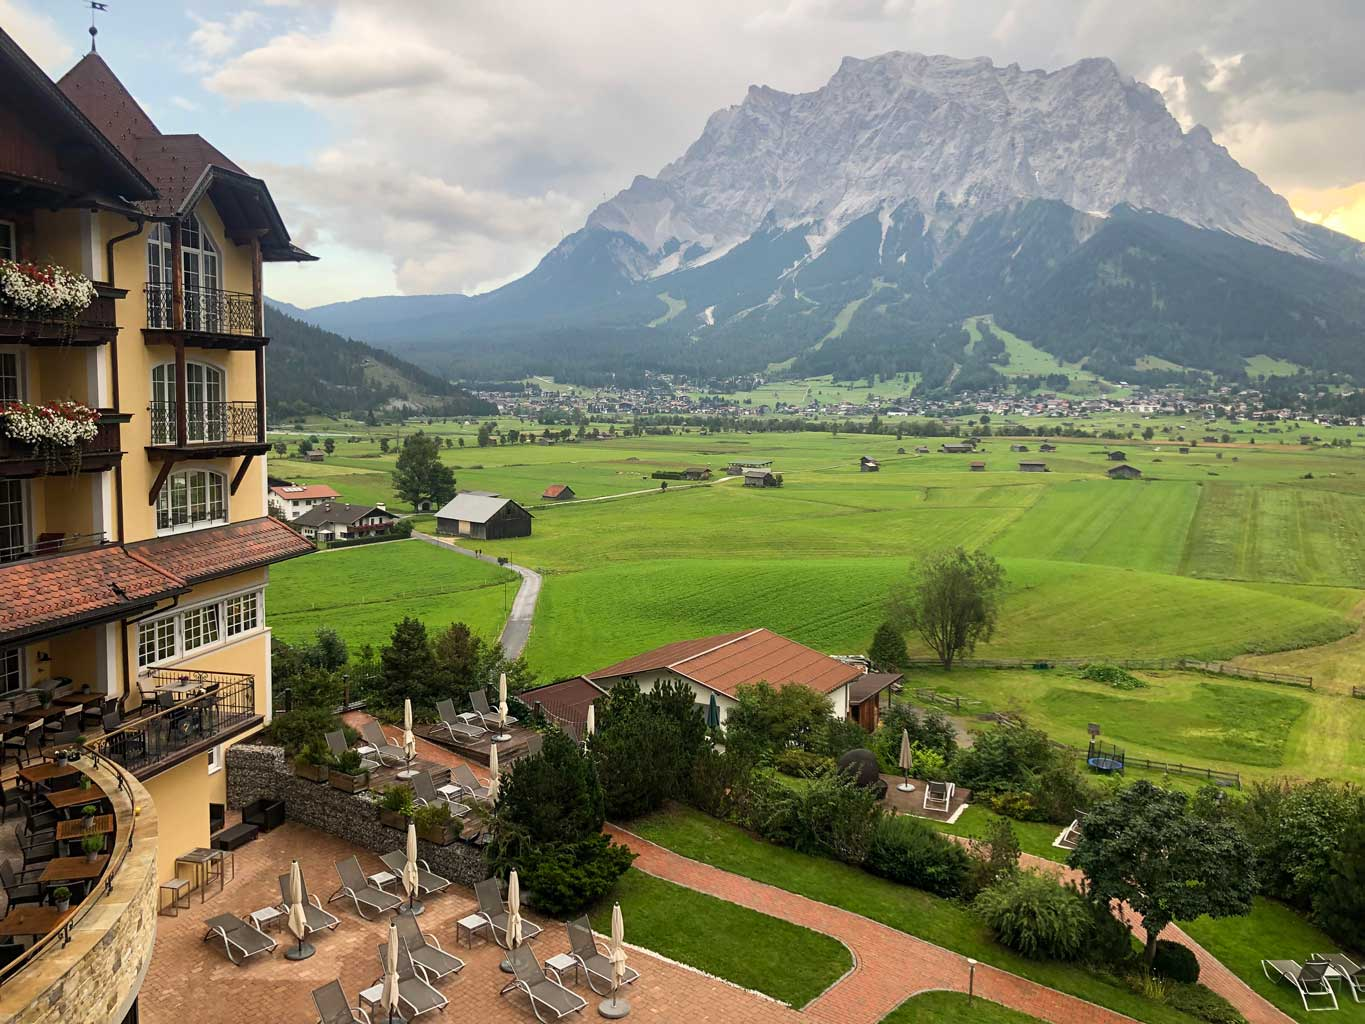 hotel-post-tiroler-zugspitz-arena